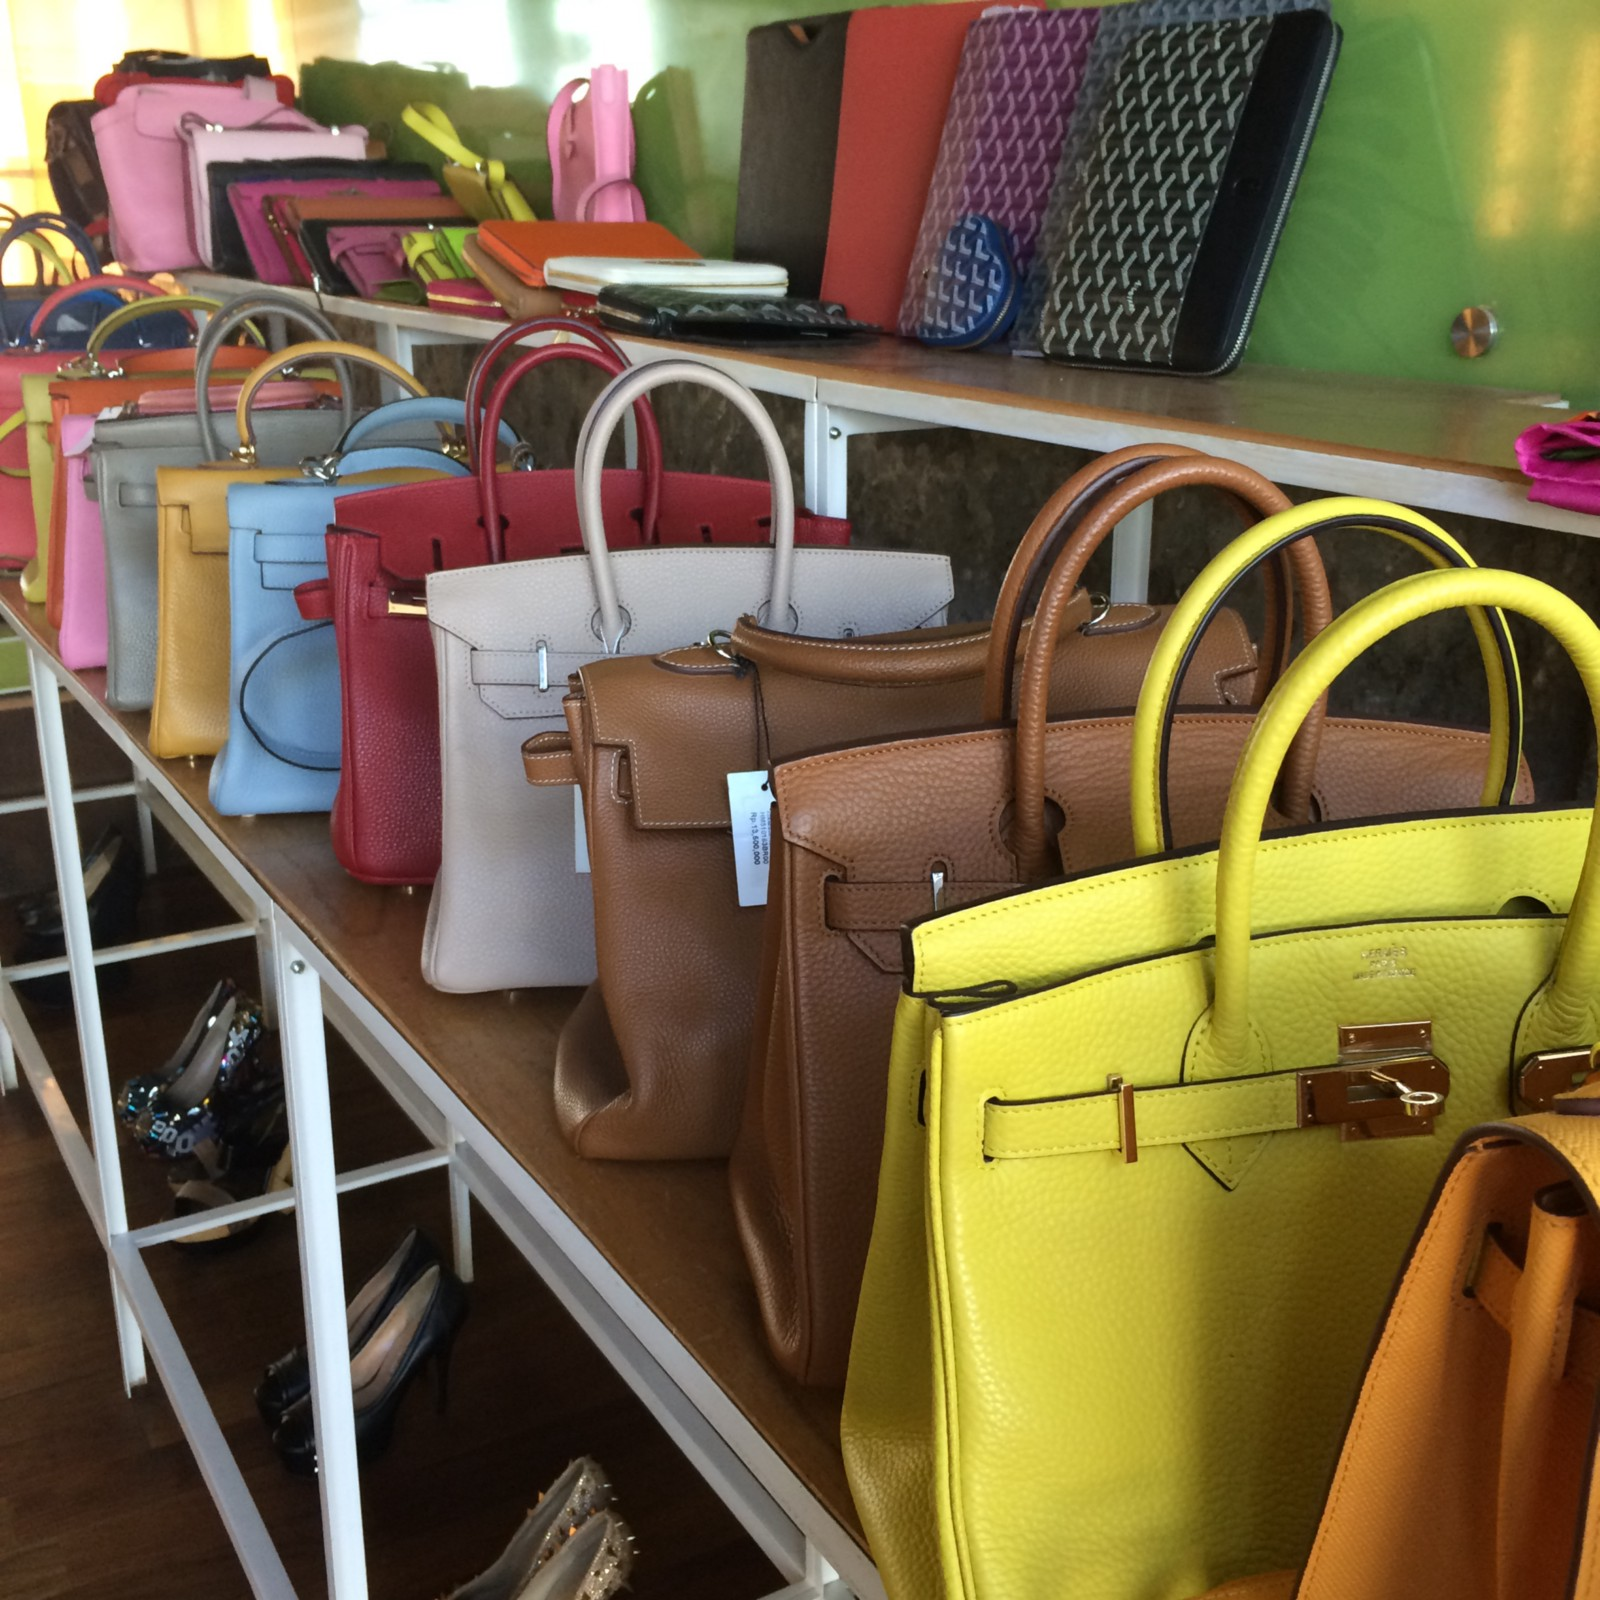 775bd1ed0e9275 The Truth About Counterfeit Luxury Handbags – Becca Risa Luna – Medium